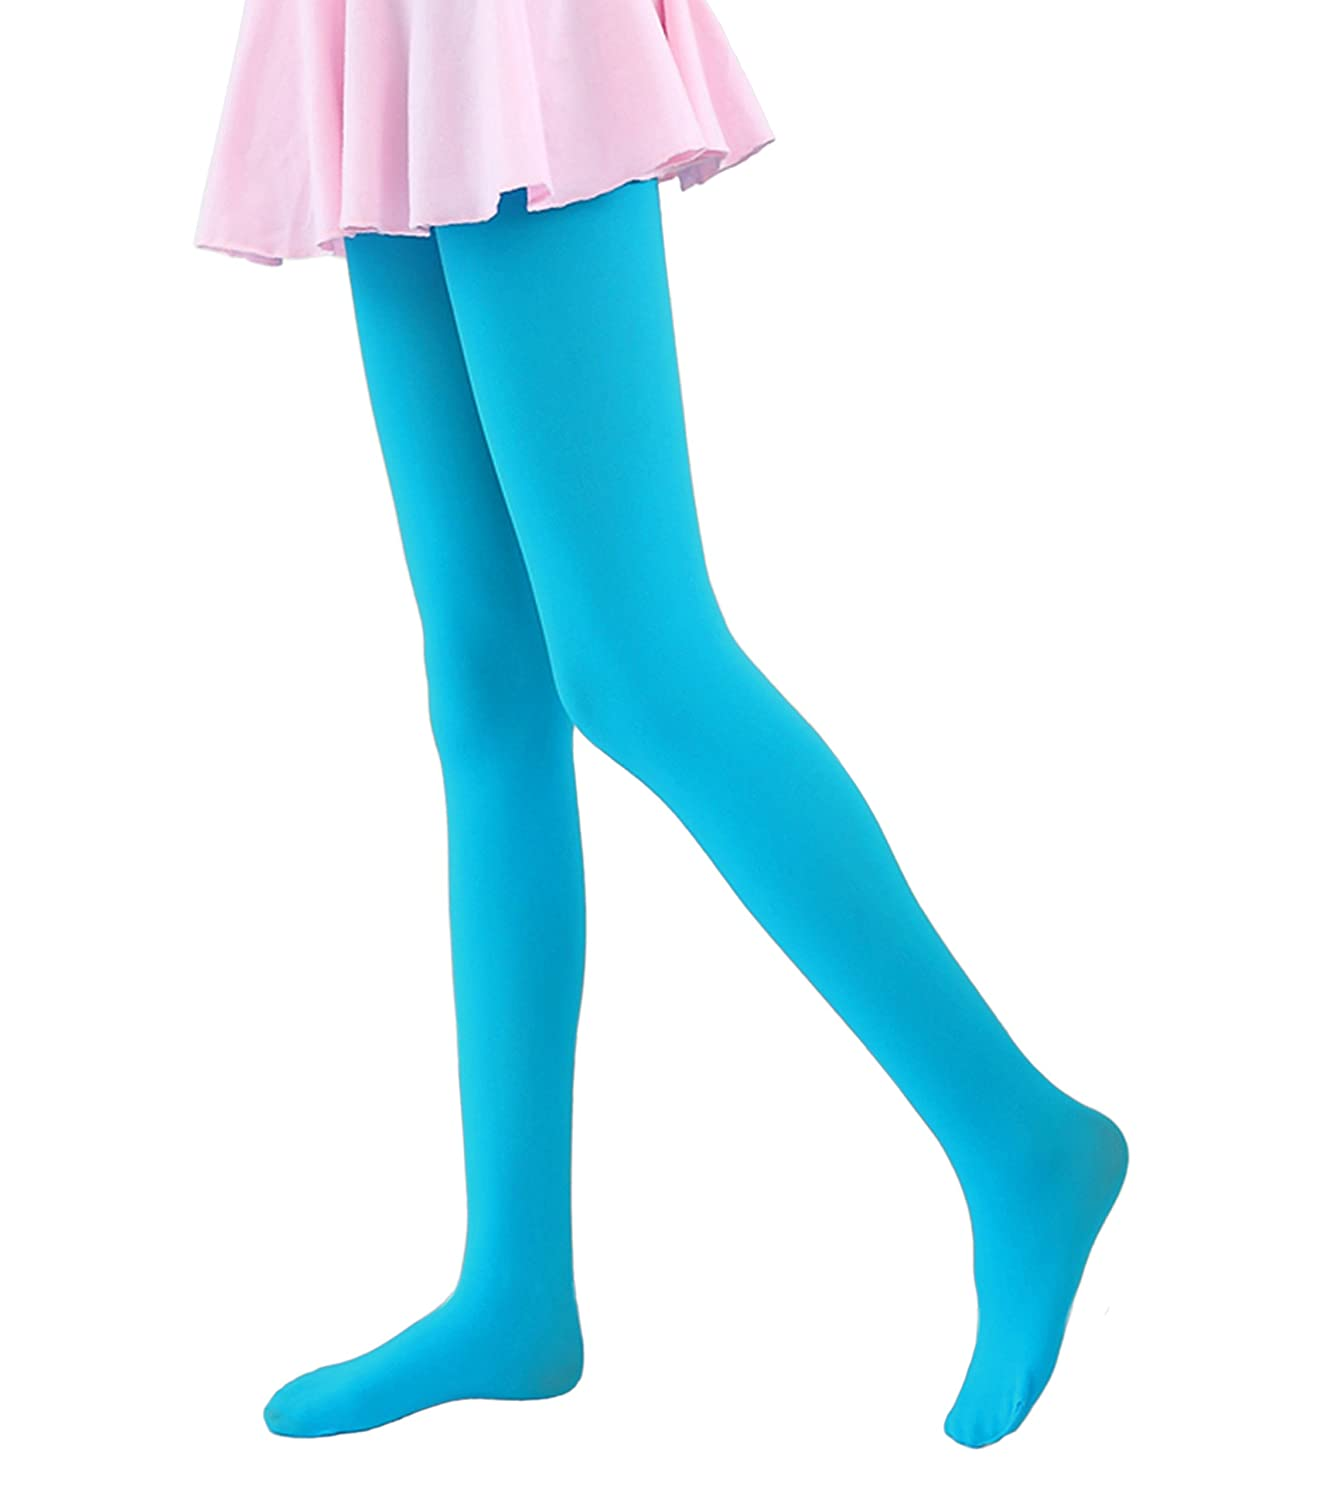 Astage 2pack of Girls Tights,Dance Stockings Astage-C-BLDDKW